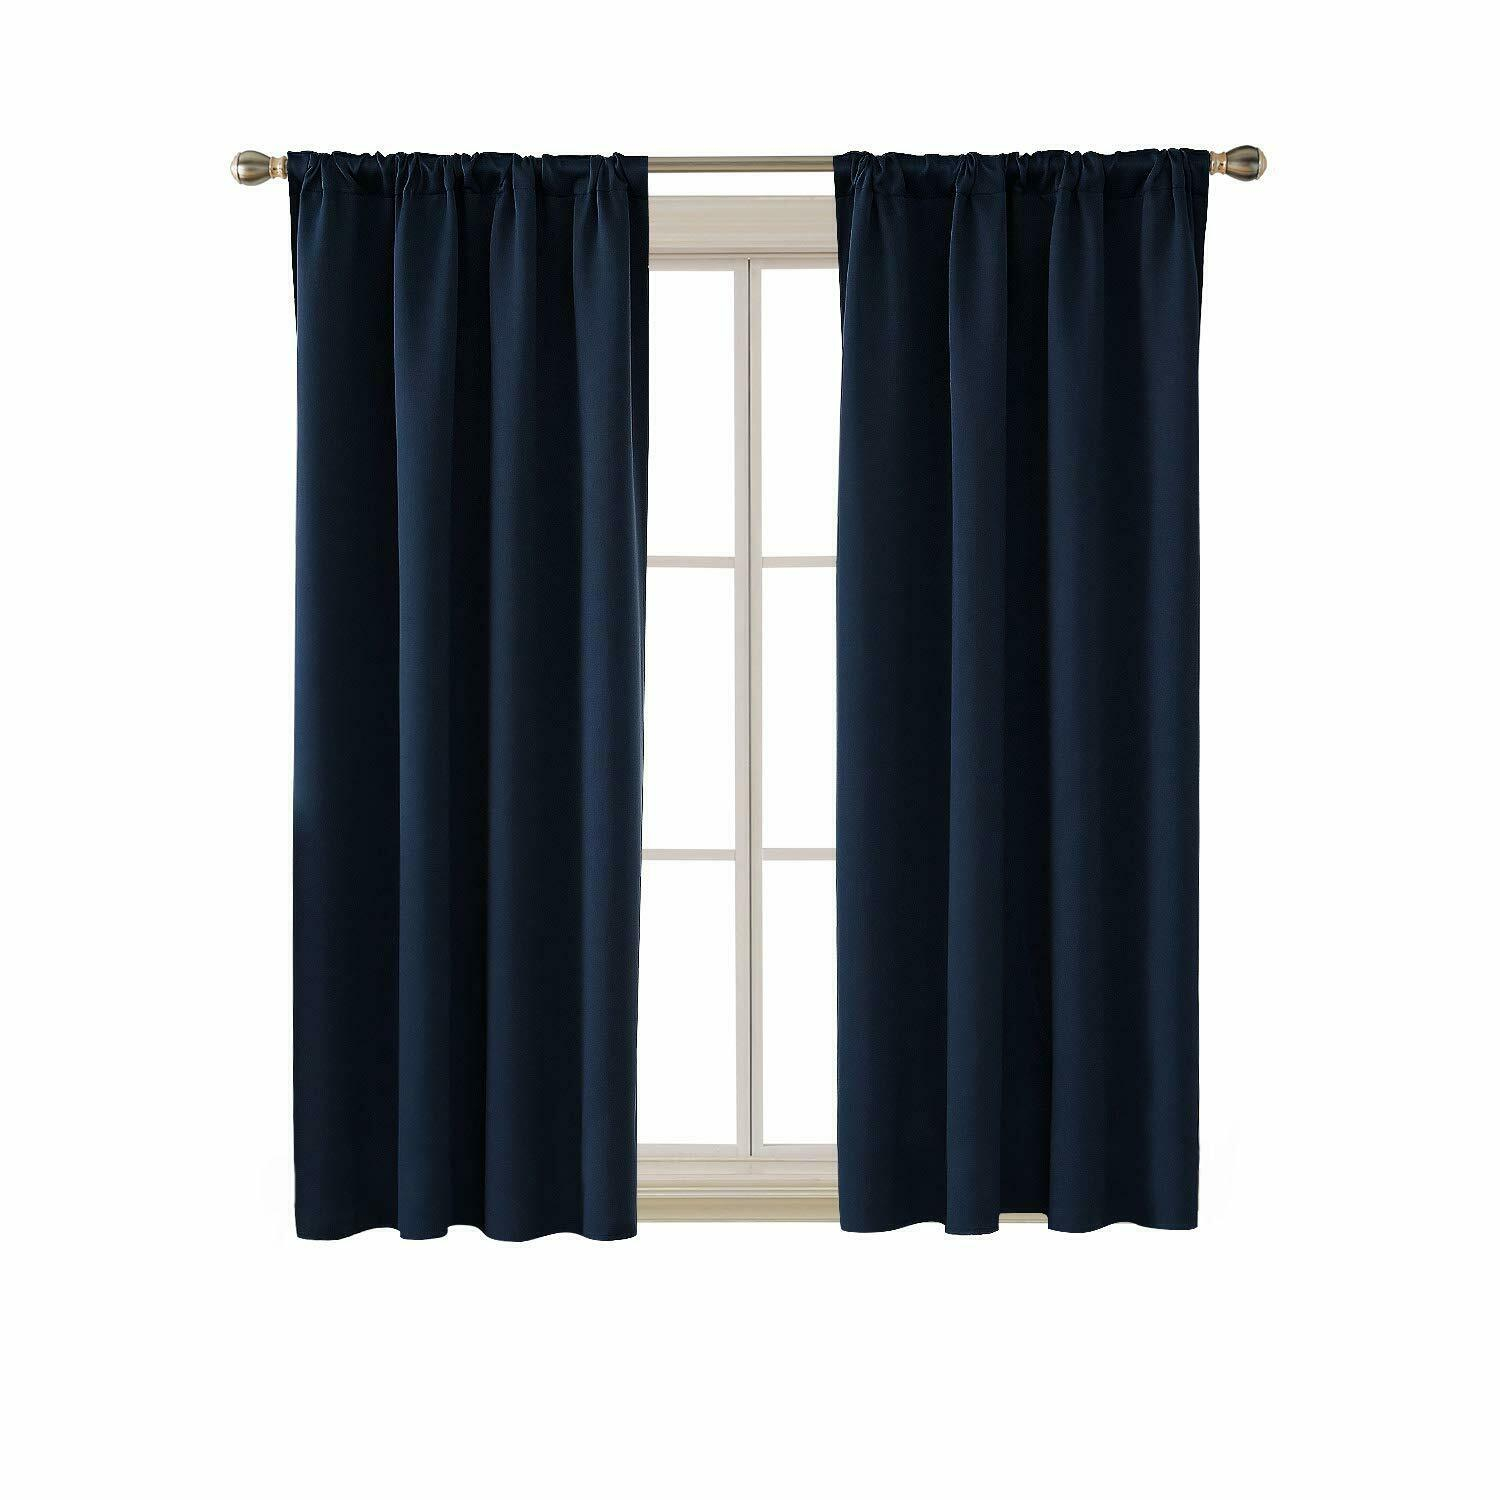 Blackout Curtain Thermal Insulated Rod Pocket Room Darkening For Bedroom,2 Panel Intended For Thermal Rod Pocket Blackout Curtain Panel Pairs (View 15 of 30)